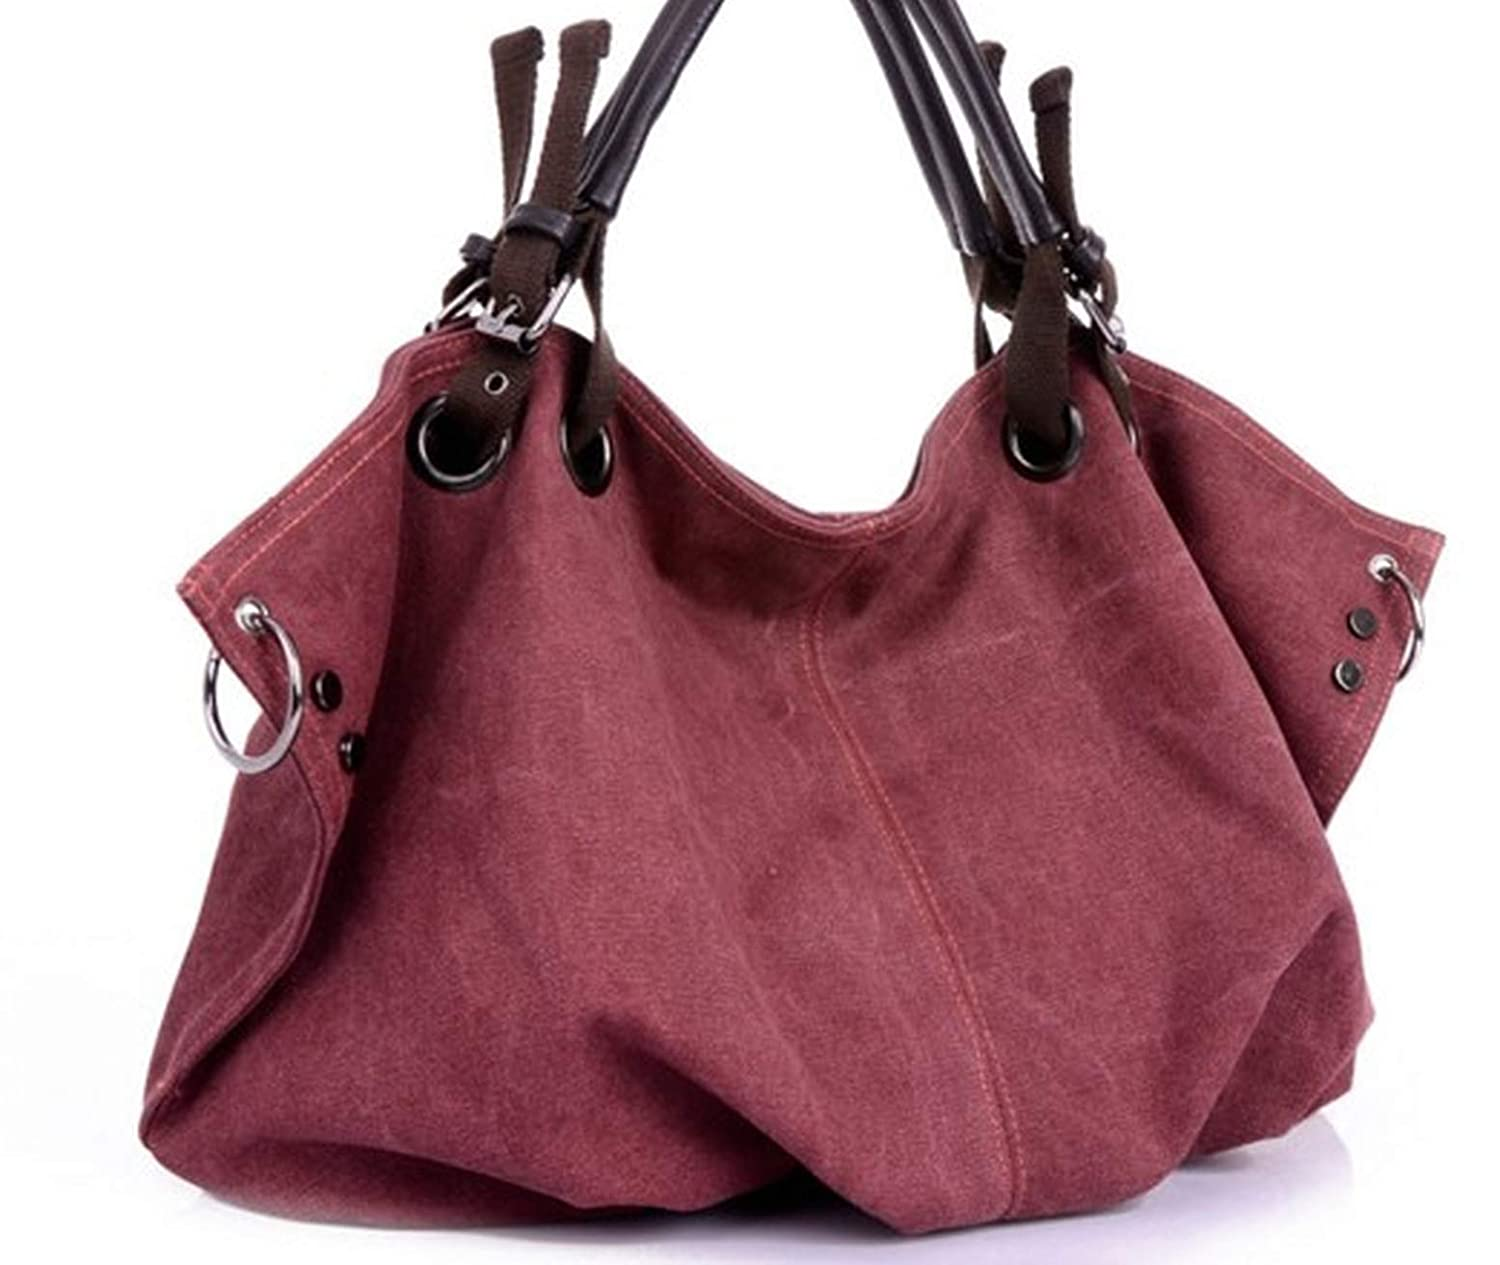 Amazon.com: Women Canvas Messenger Bags Handbags Female Tote ...